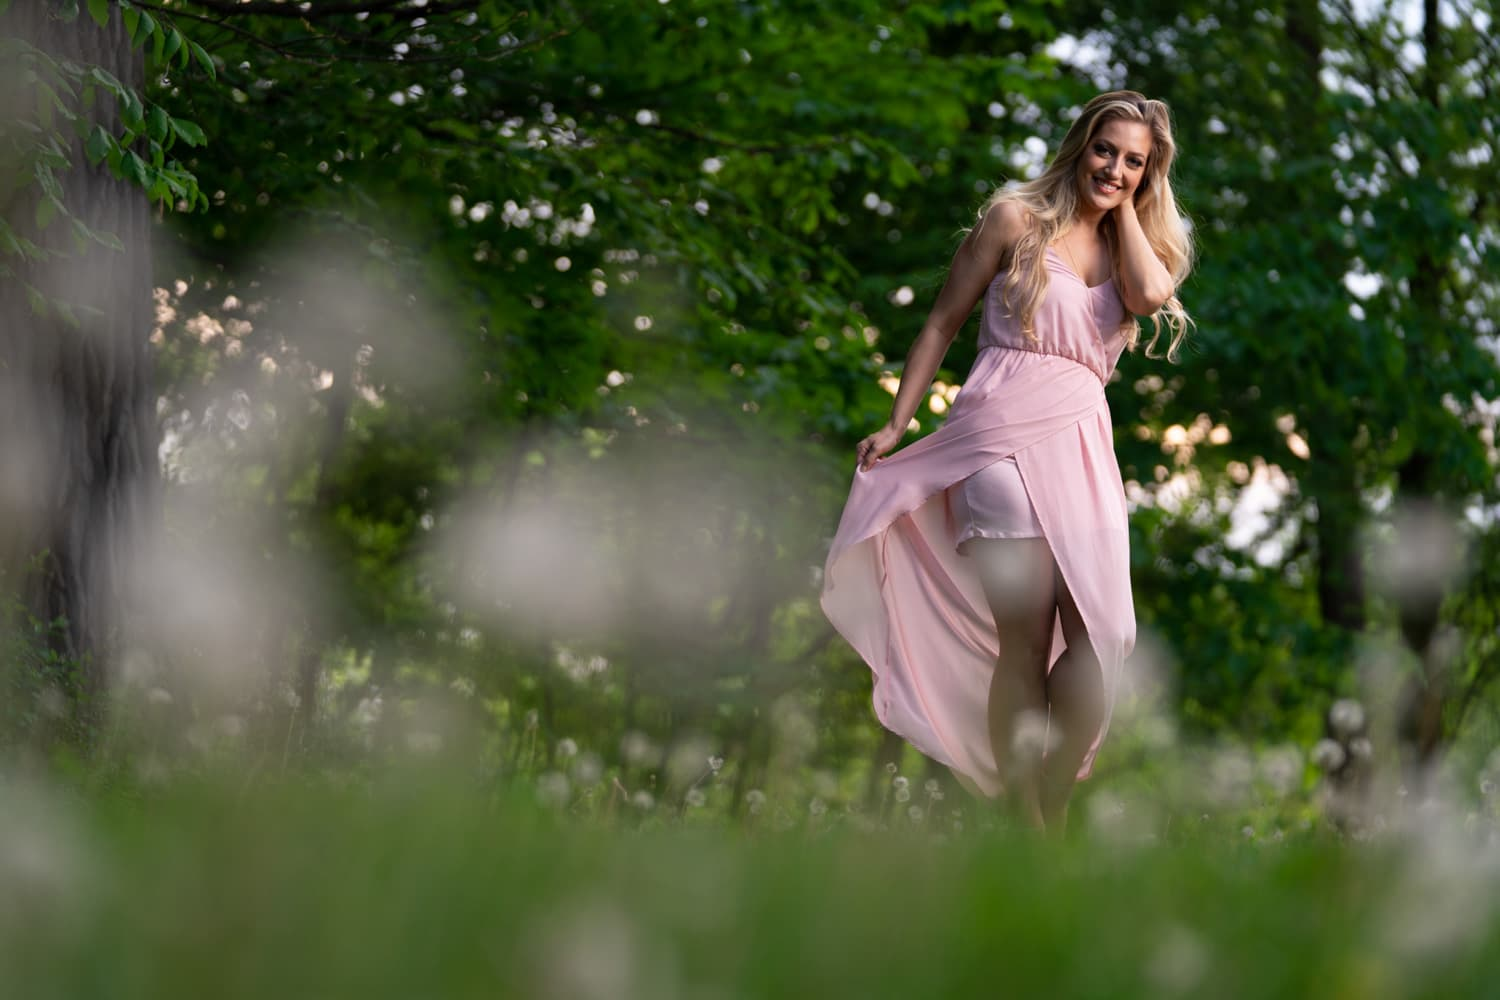 Blonde woman twirling pink dress in field of dandelions